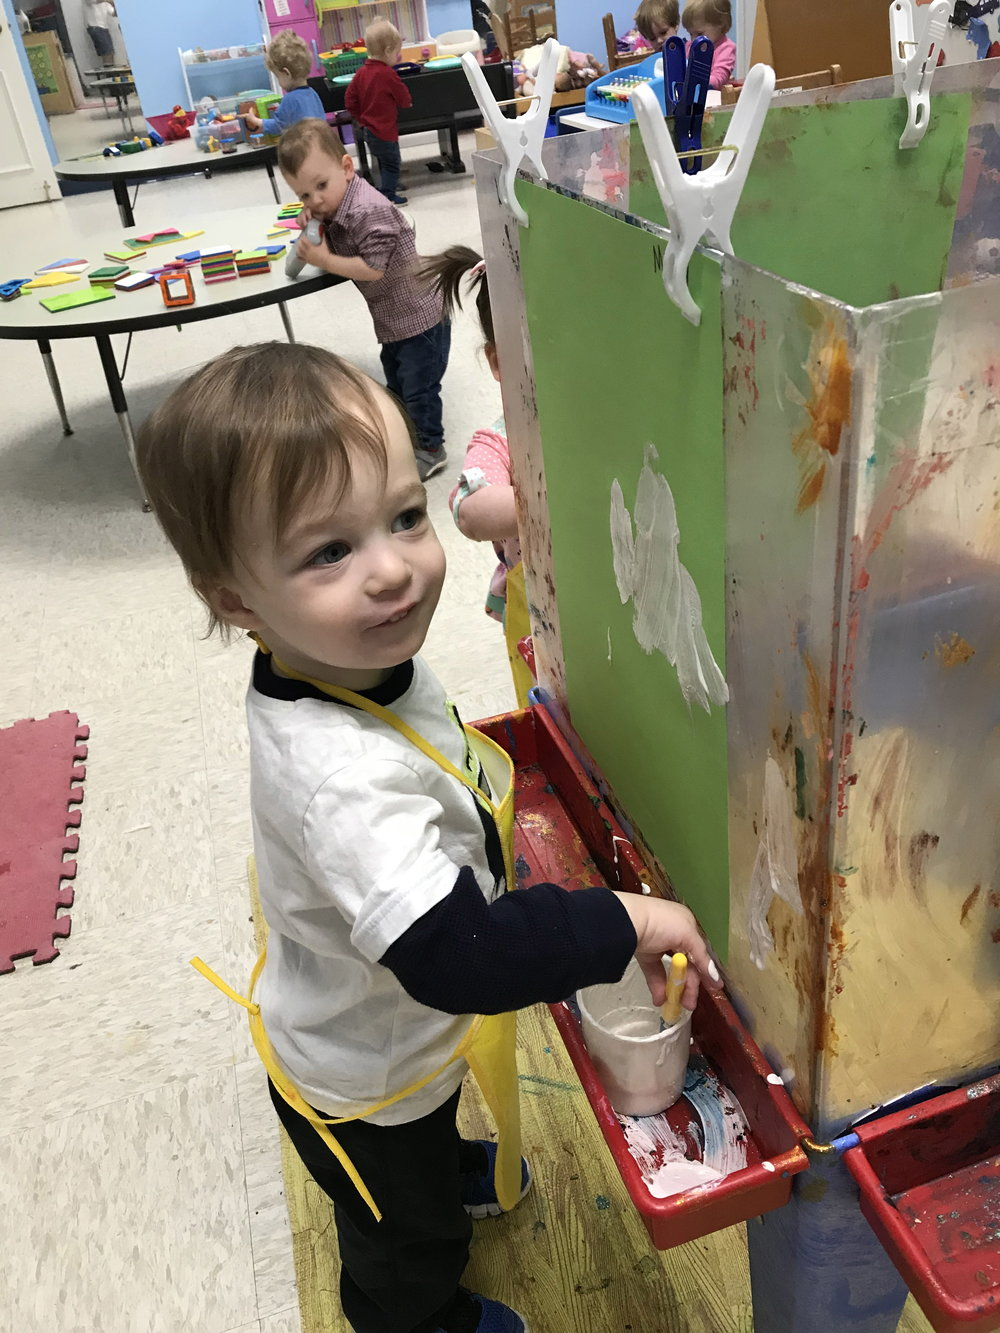 We love to easel paint - this is great for prewriting and movements across the body.